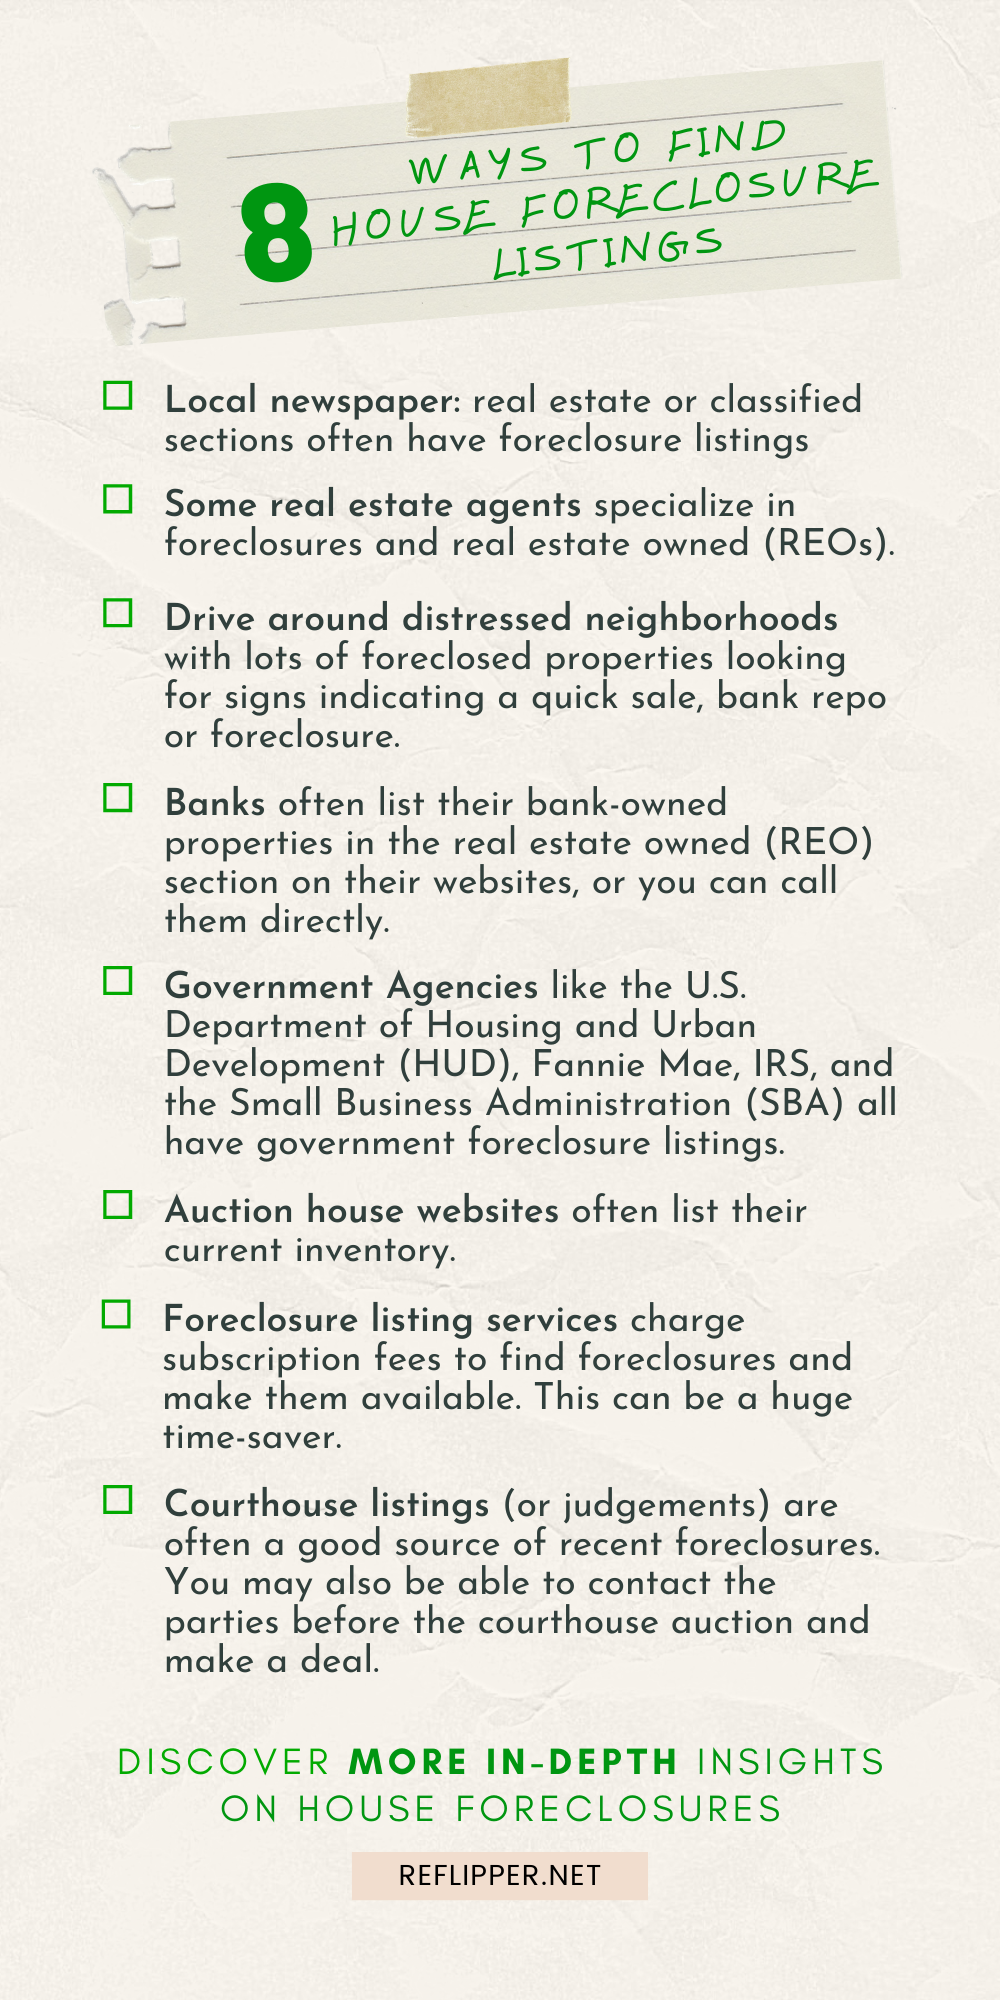 An infographic describing 8 ways to find house foreclosure listings.